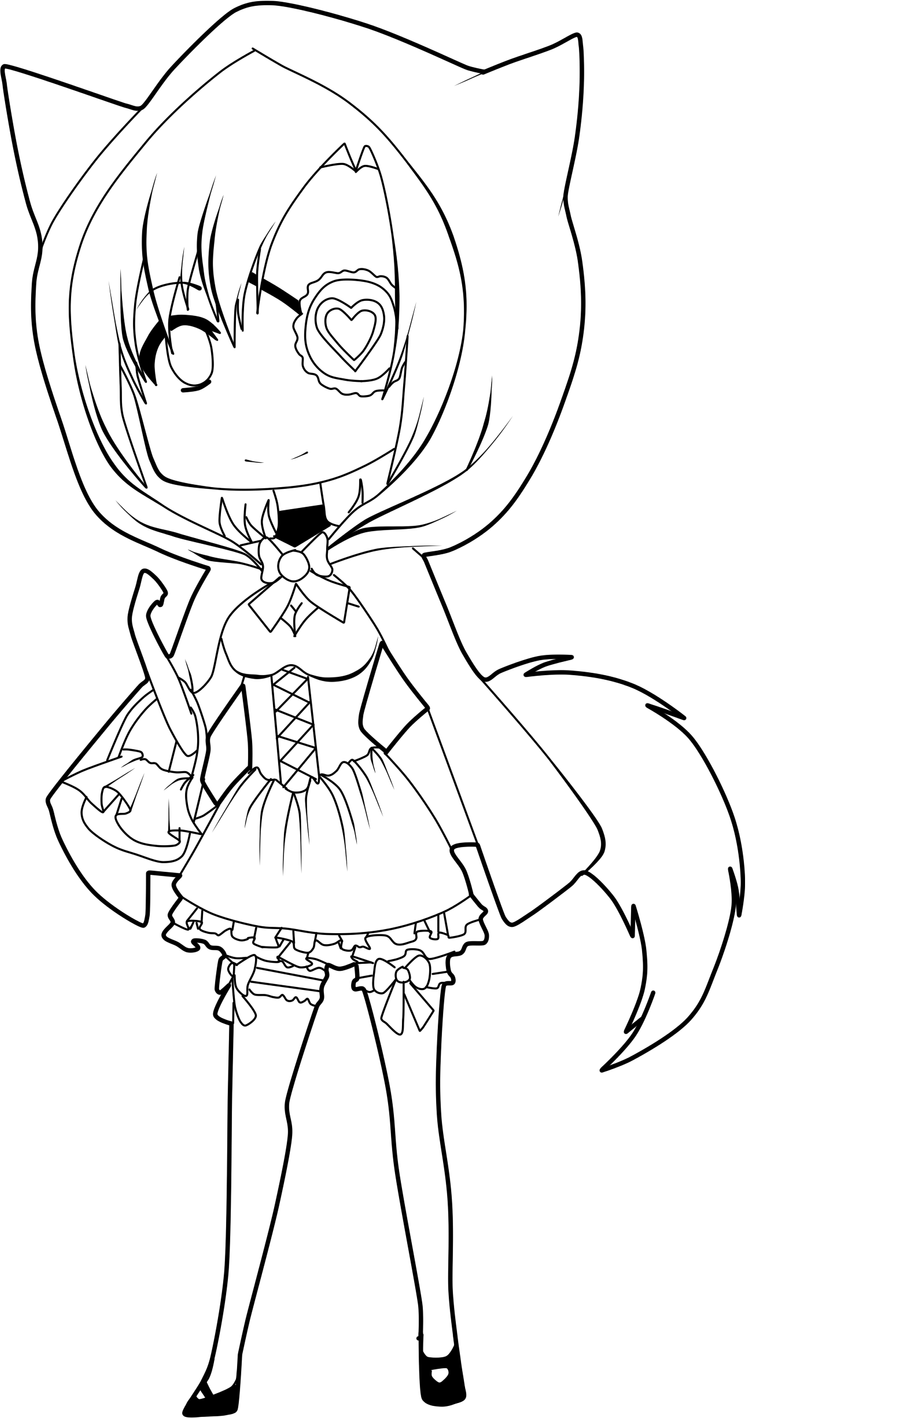 Red riding hood lineart by mi chisama on deviantart for Red riding hood coloring pages